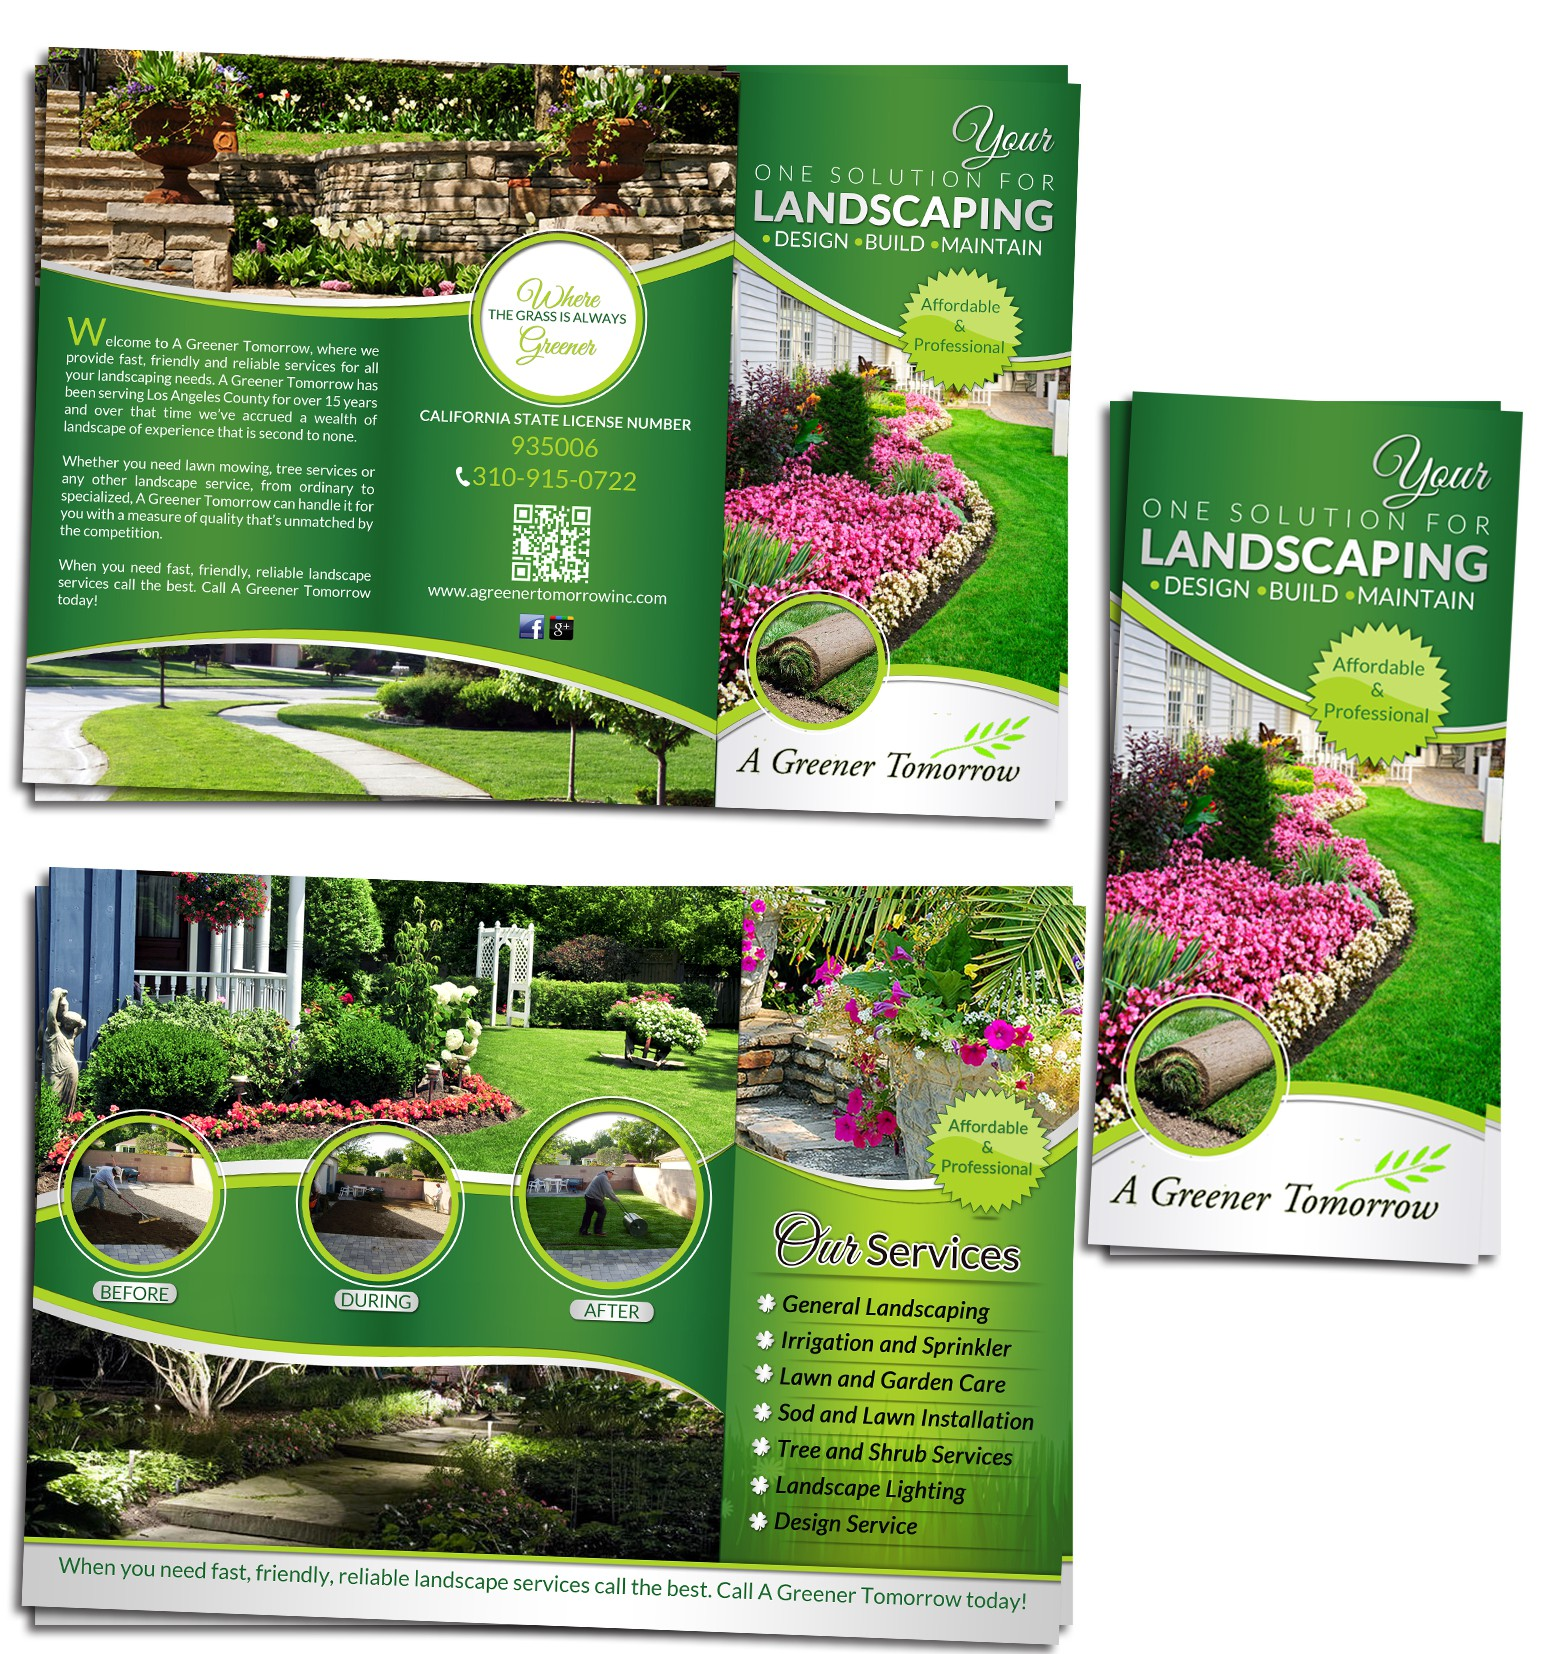 New brochure design wanted for A Greener Tomorrow Inc.